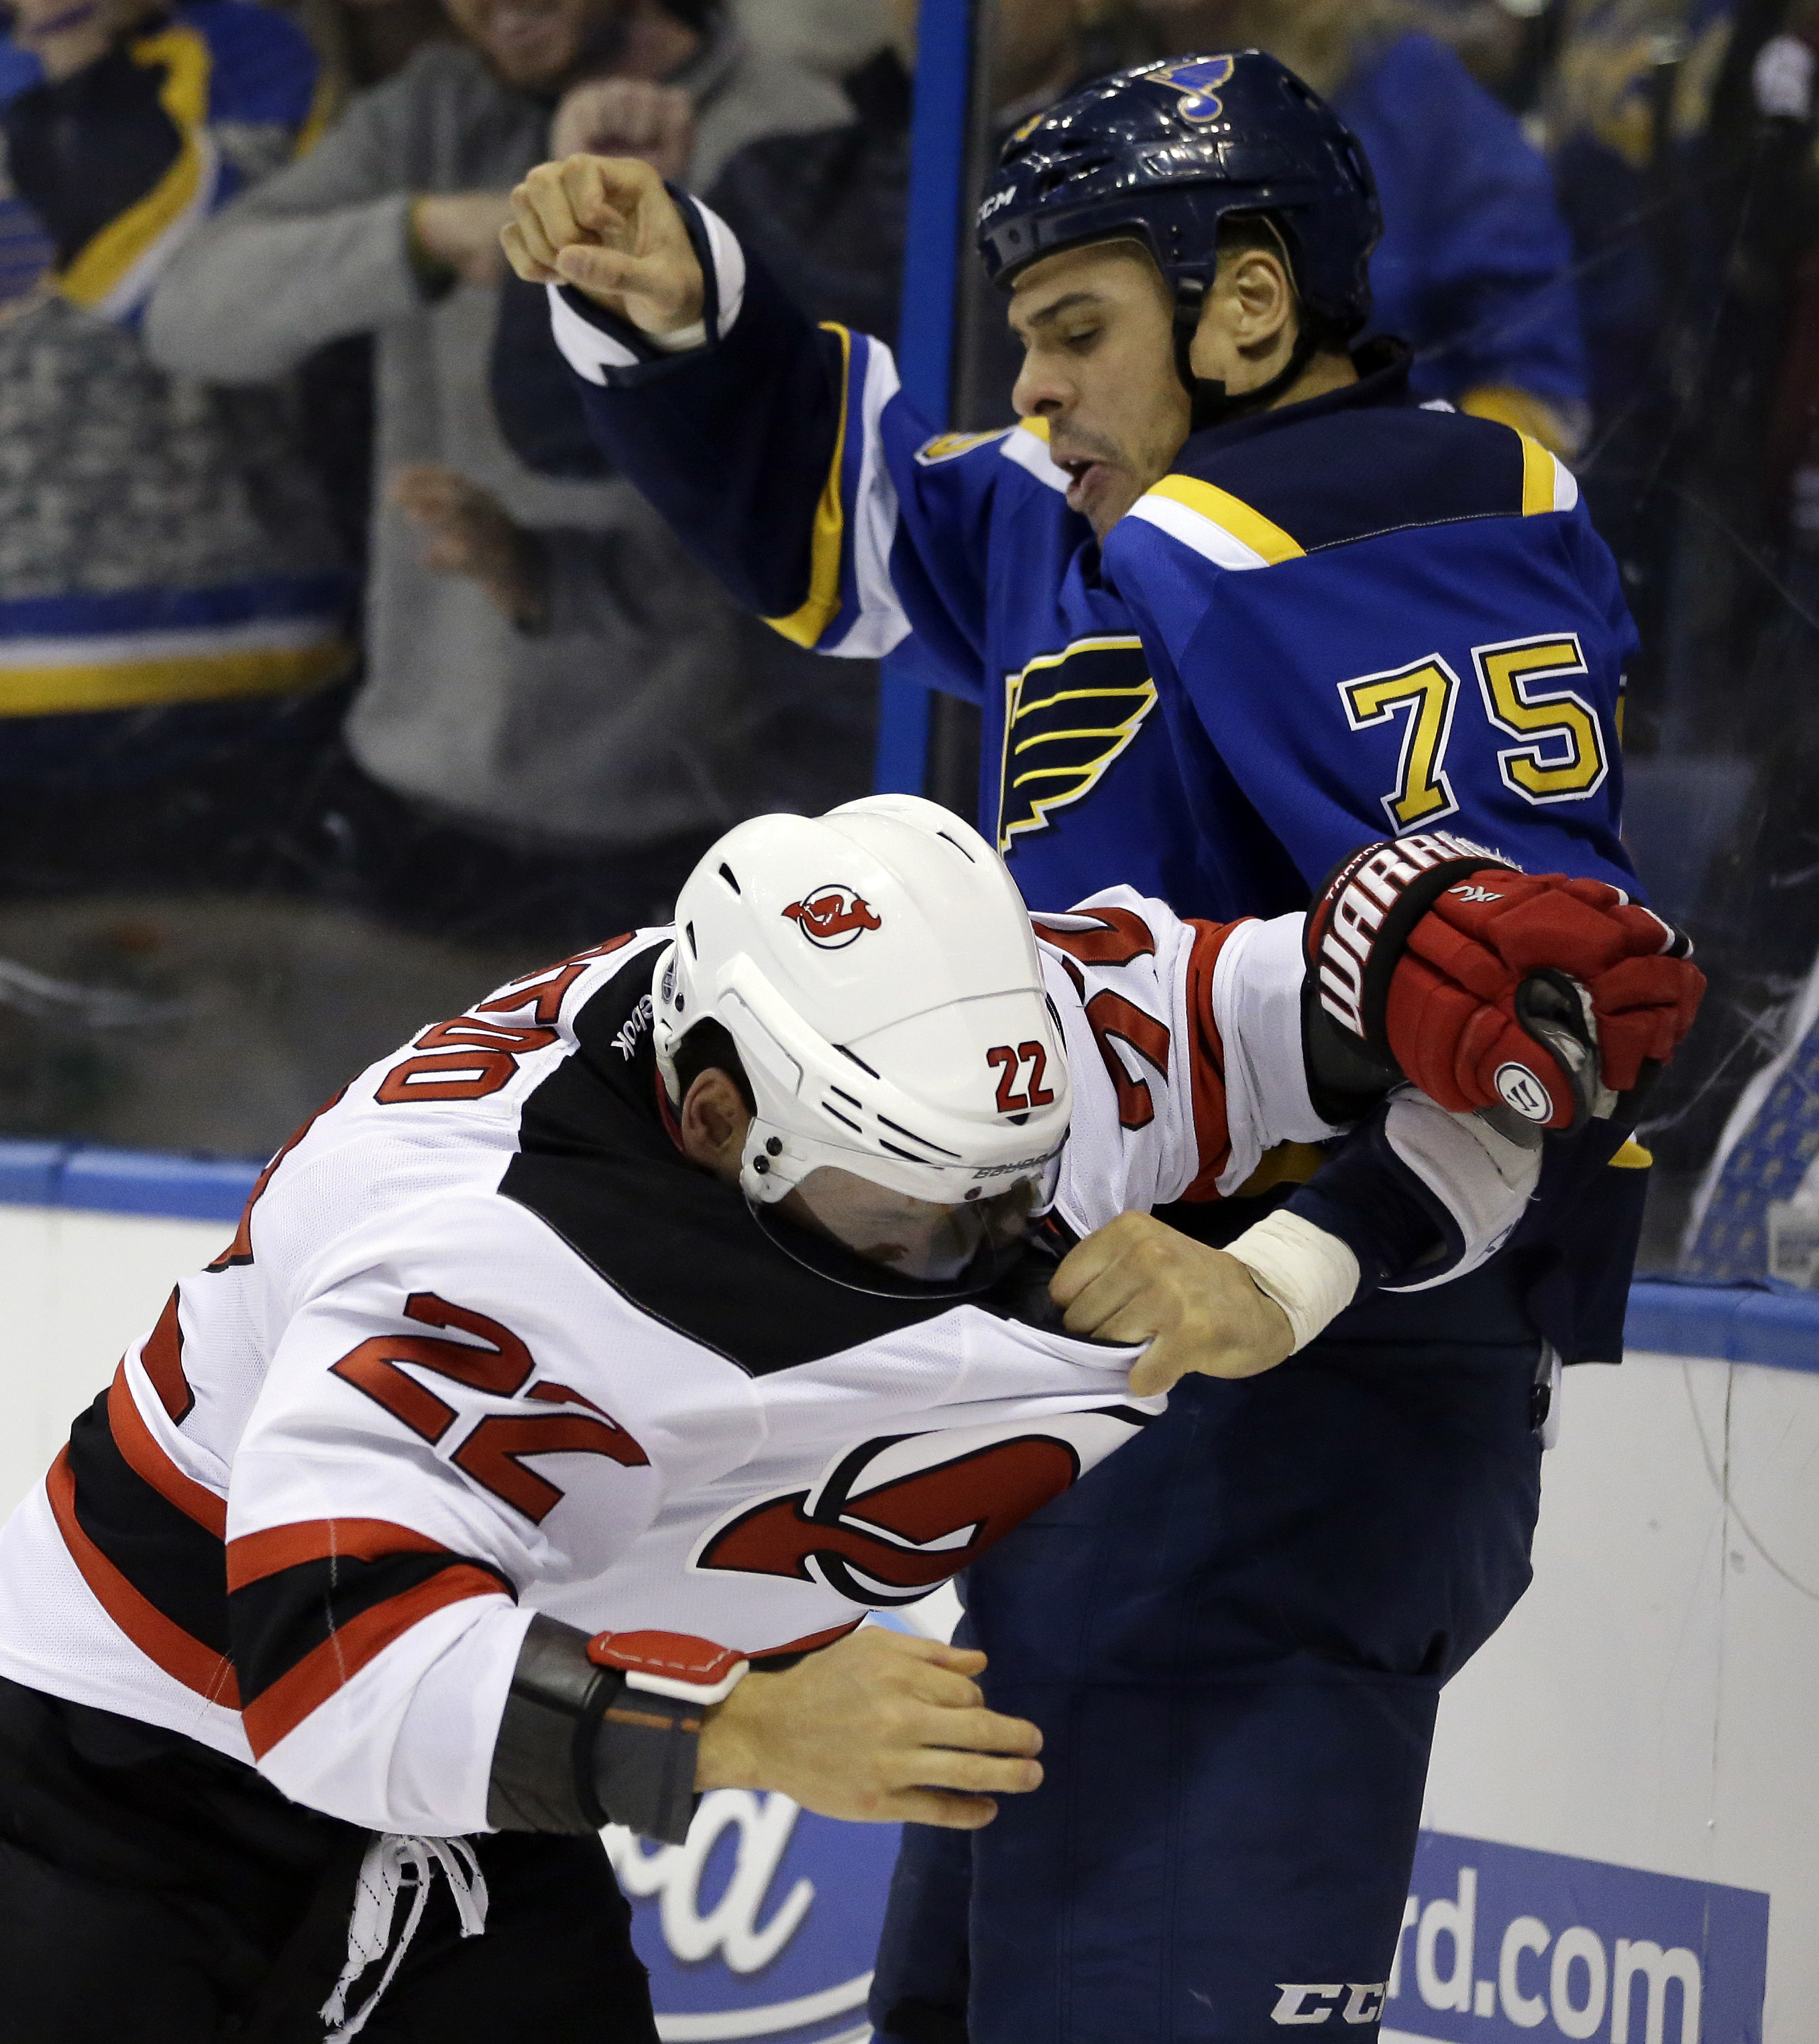 St. Louis Blues' Ryan Reaves (75) and New Jersey Devils' Jordin Tootoo fight during the third period of an NHL hockey game, Tuesday, Jan. 12, 2016, in St. Louis. The Blues won 5-2. (AP Photo/Jeff Roberson)